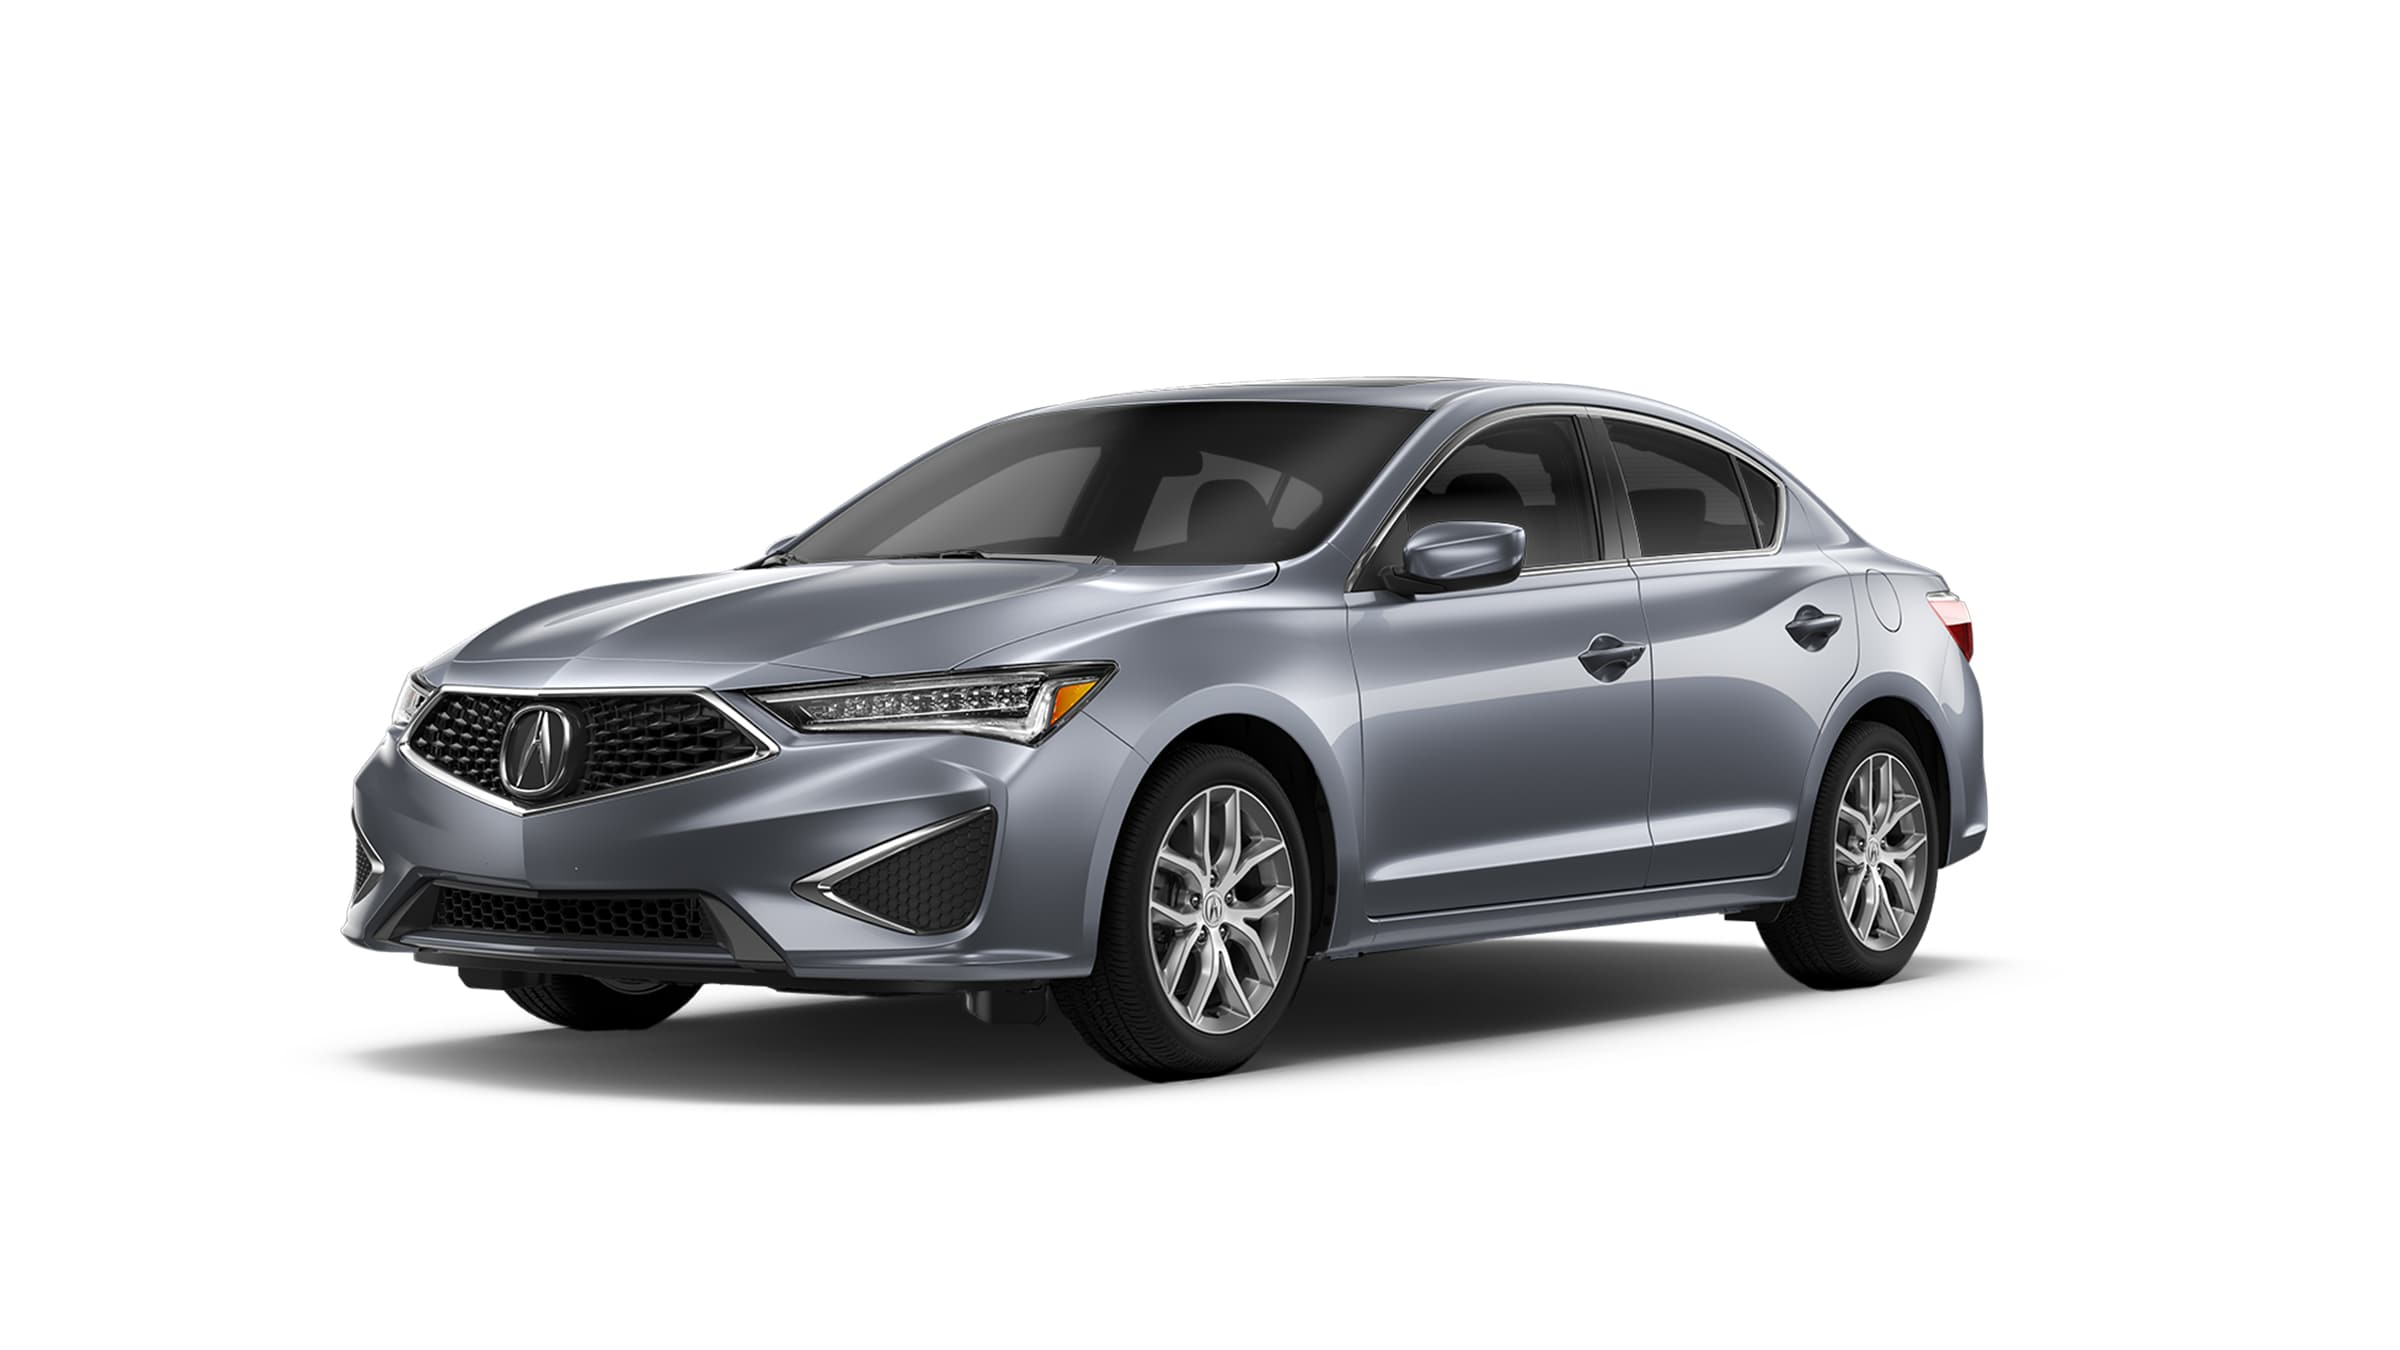 22 Best Review Acura Tlx 2020 Lease Specs by Acura Tlx 2020 Lease